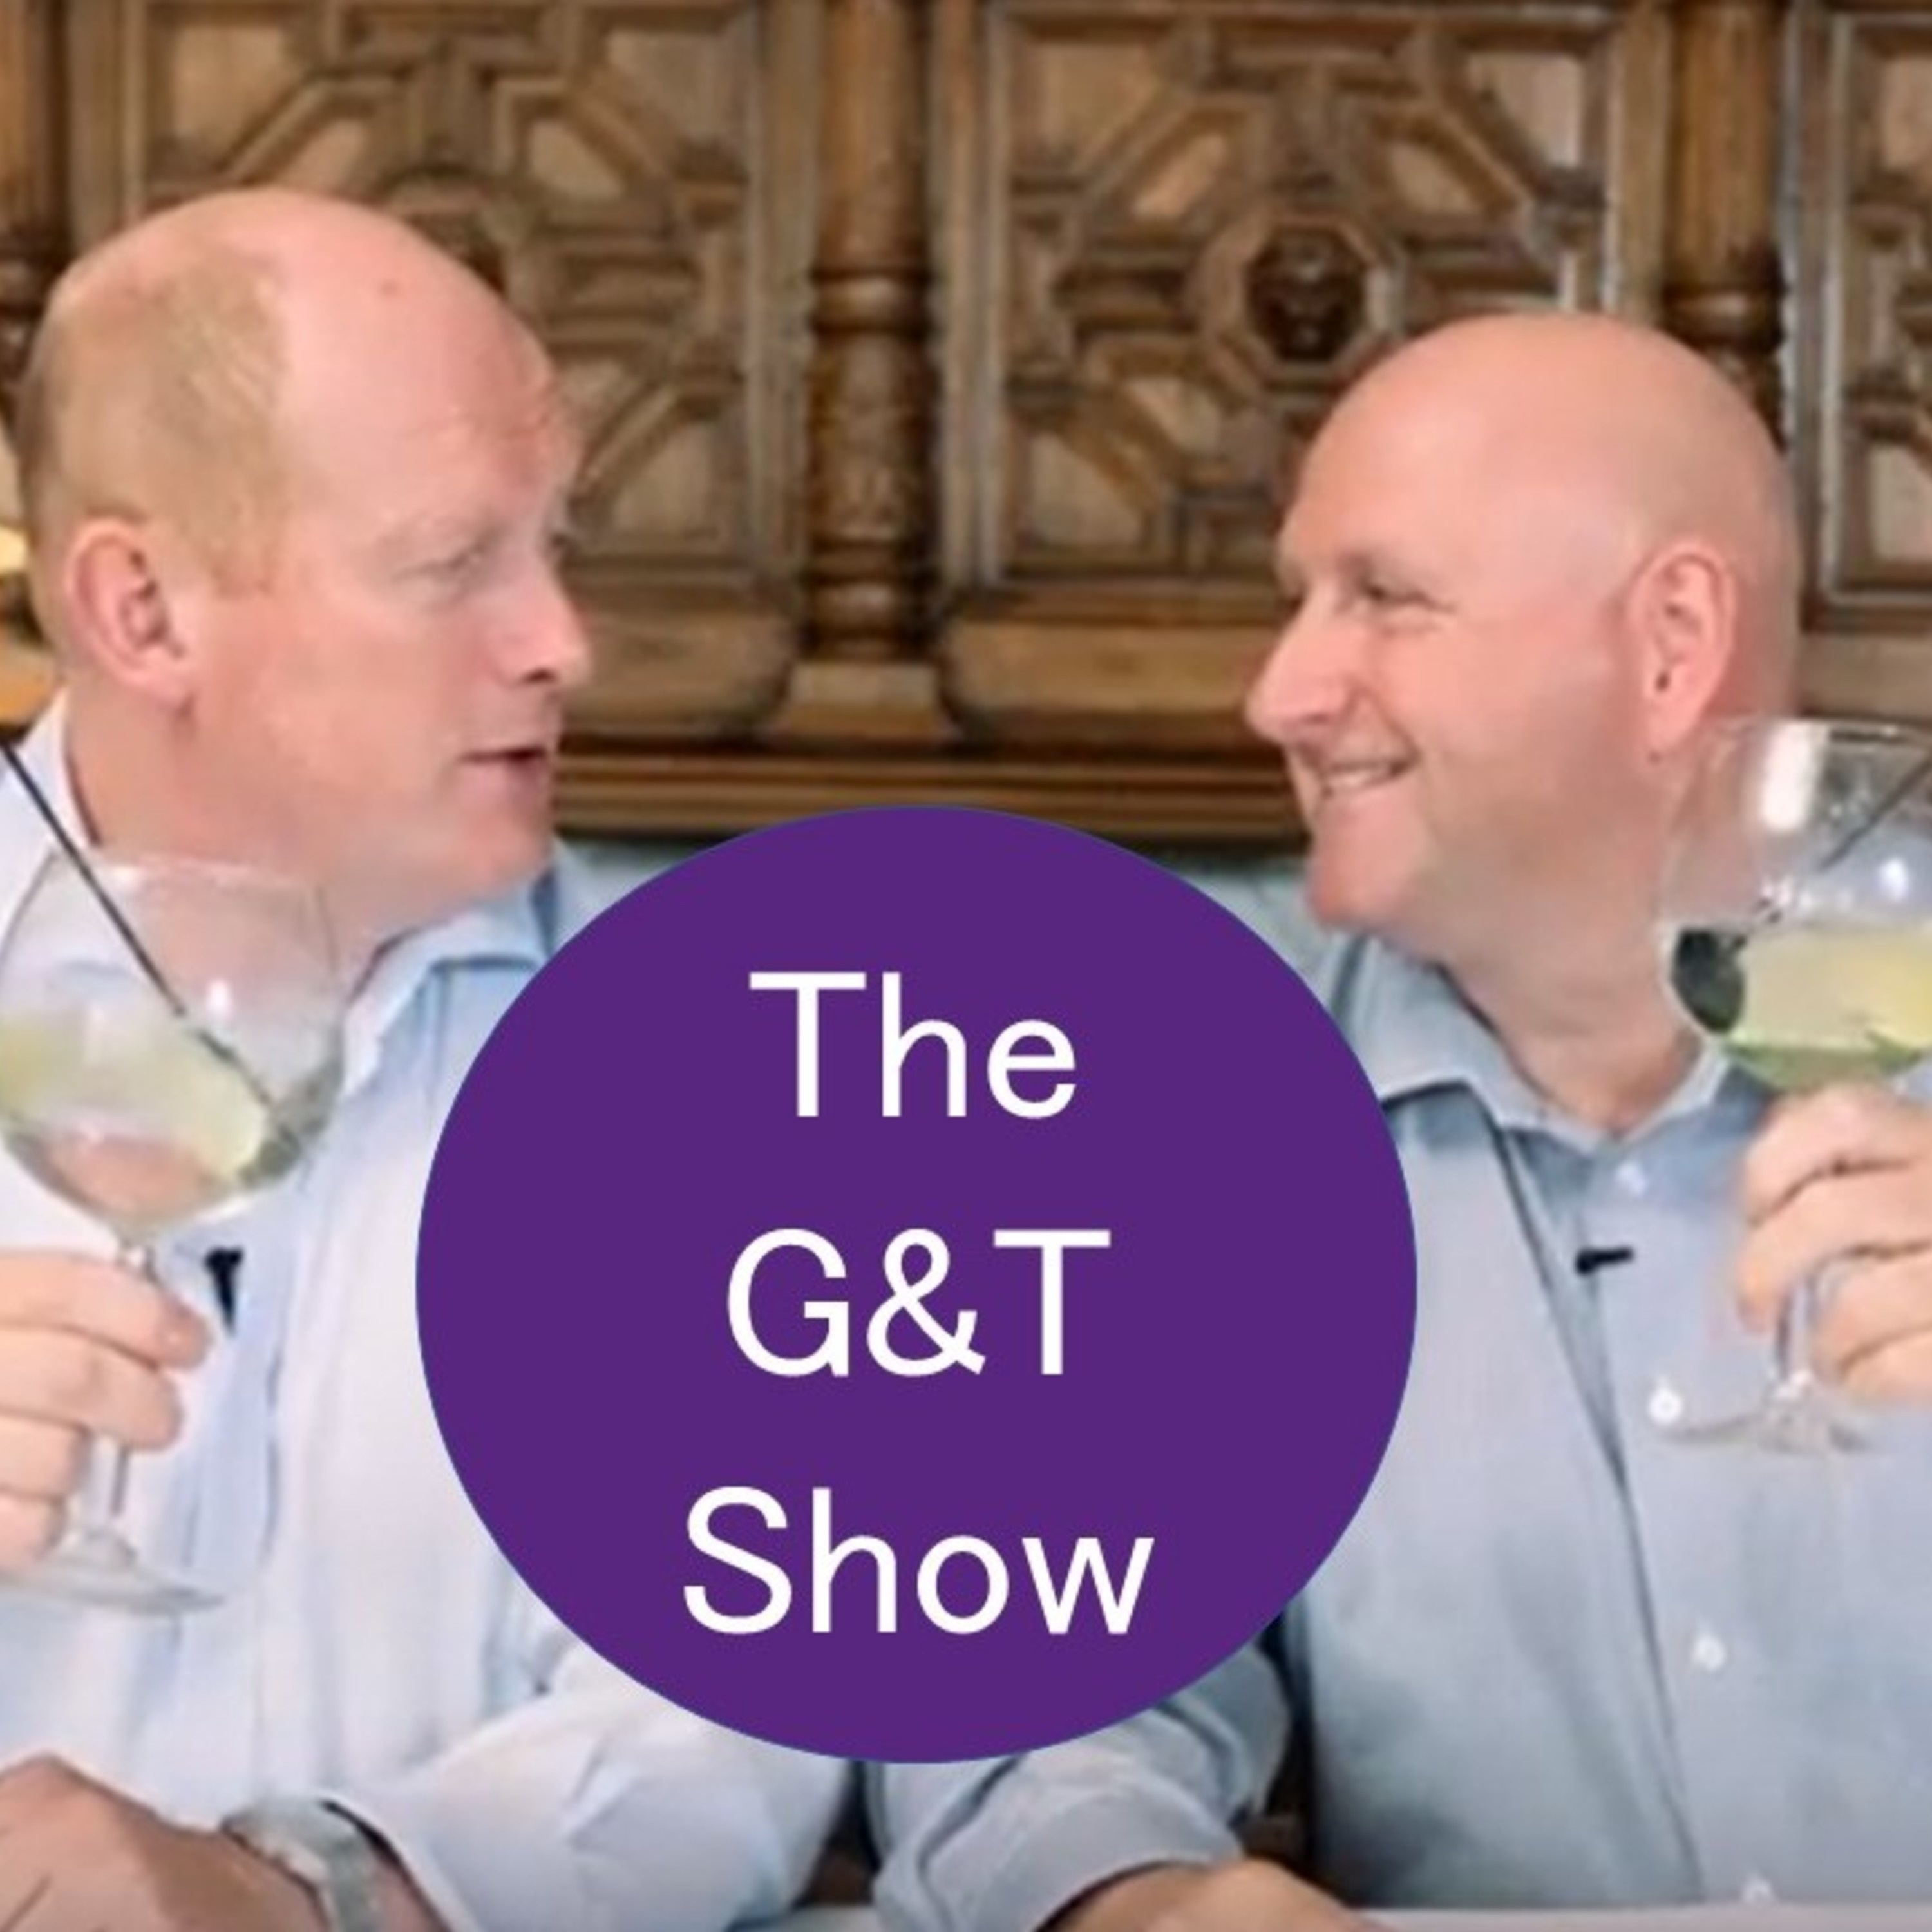 GBTV - G&T with Guy and Terry - Understanding your personal 'why?'